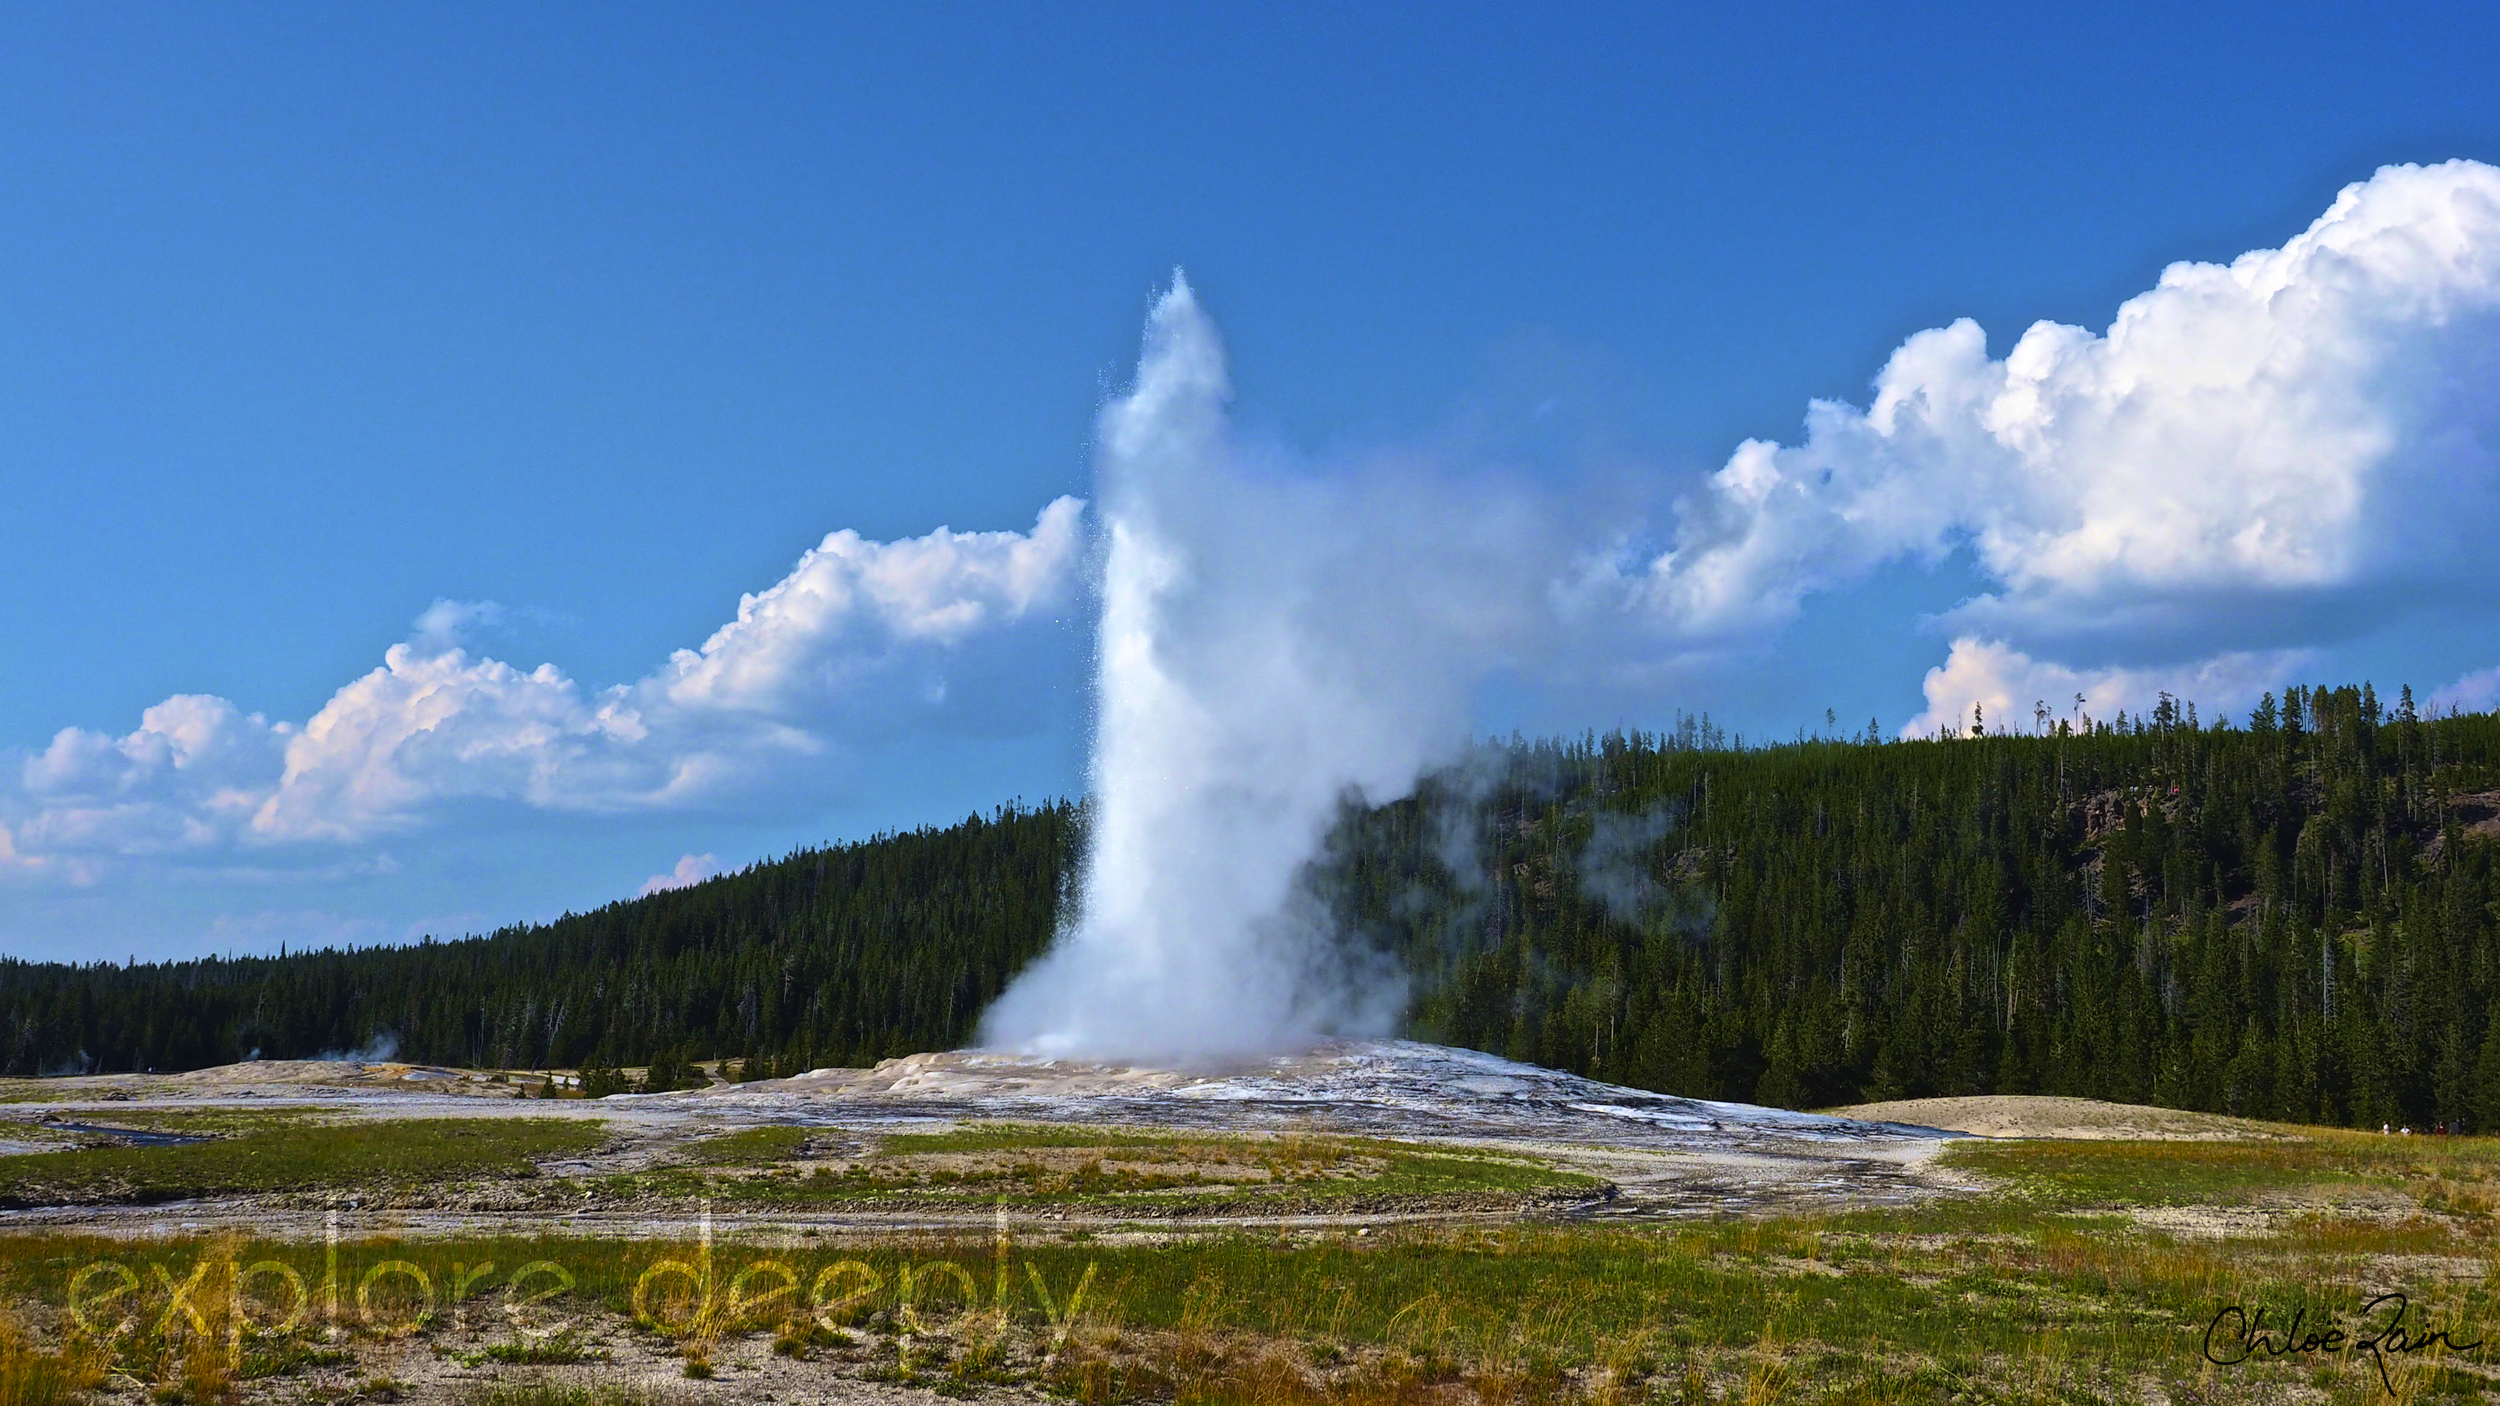 Old Faithful the famous geyser located in Wyoming, Yellowstone National Park.